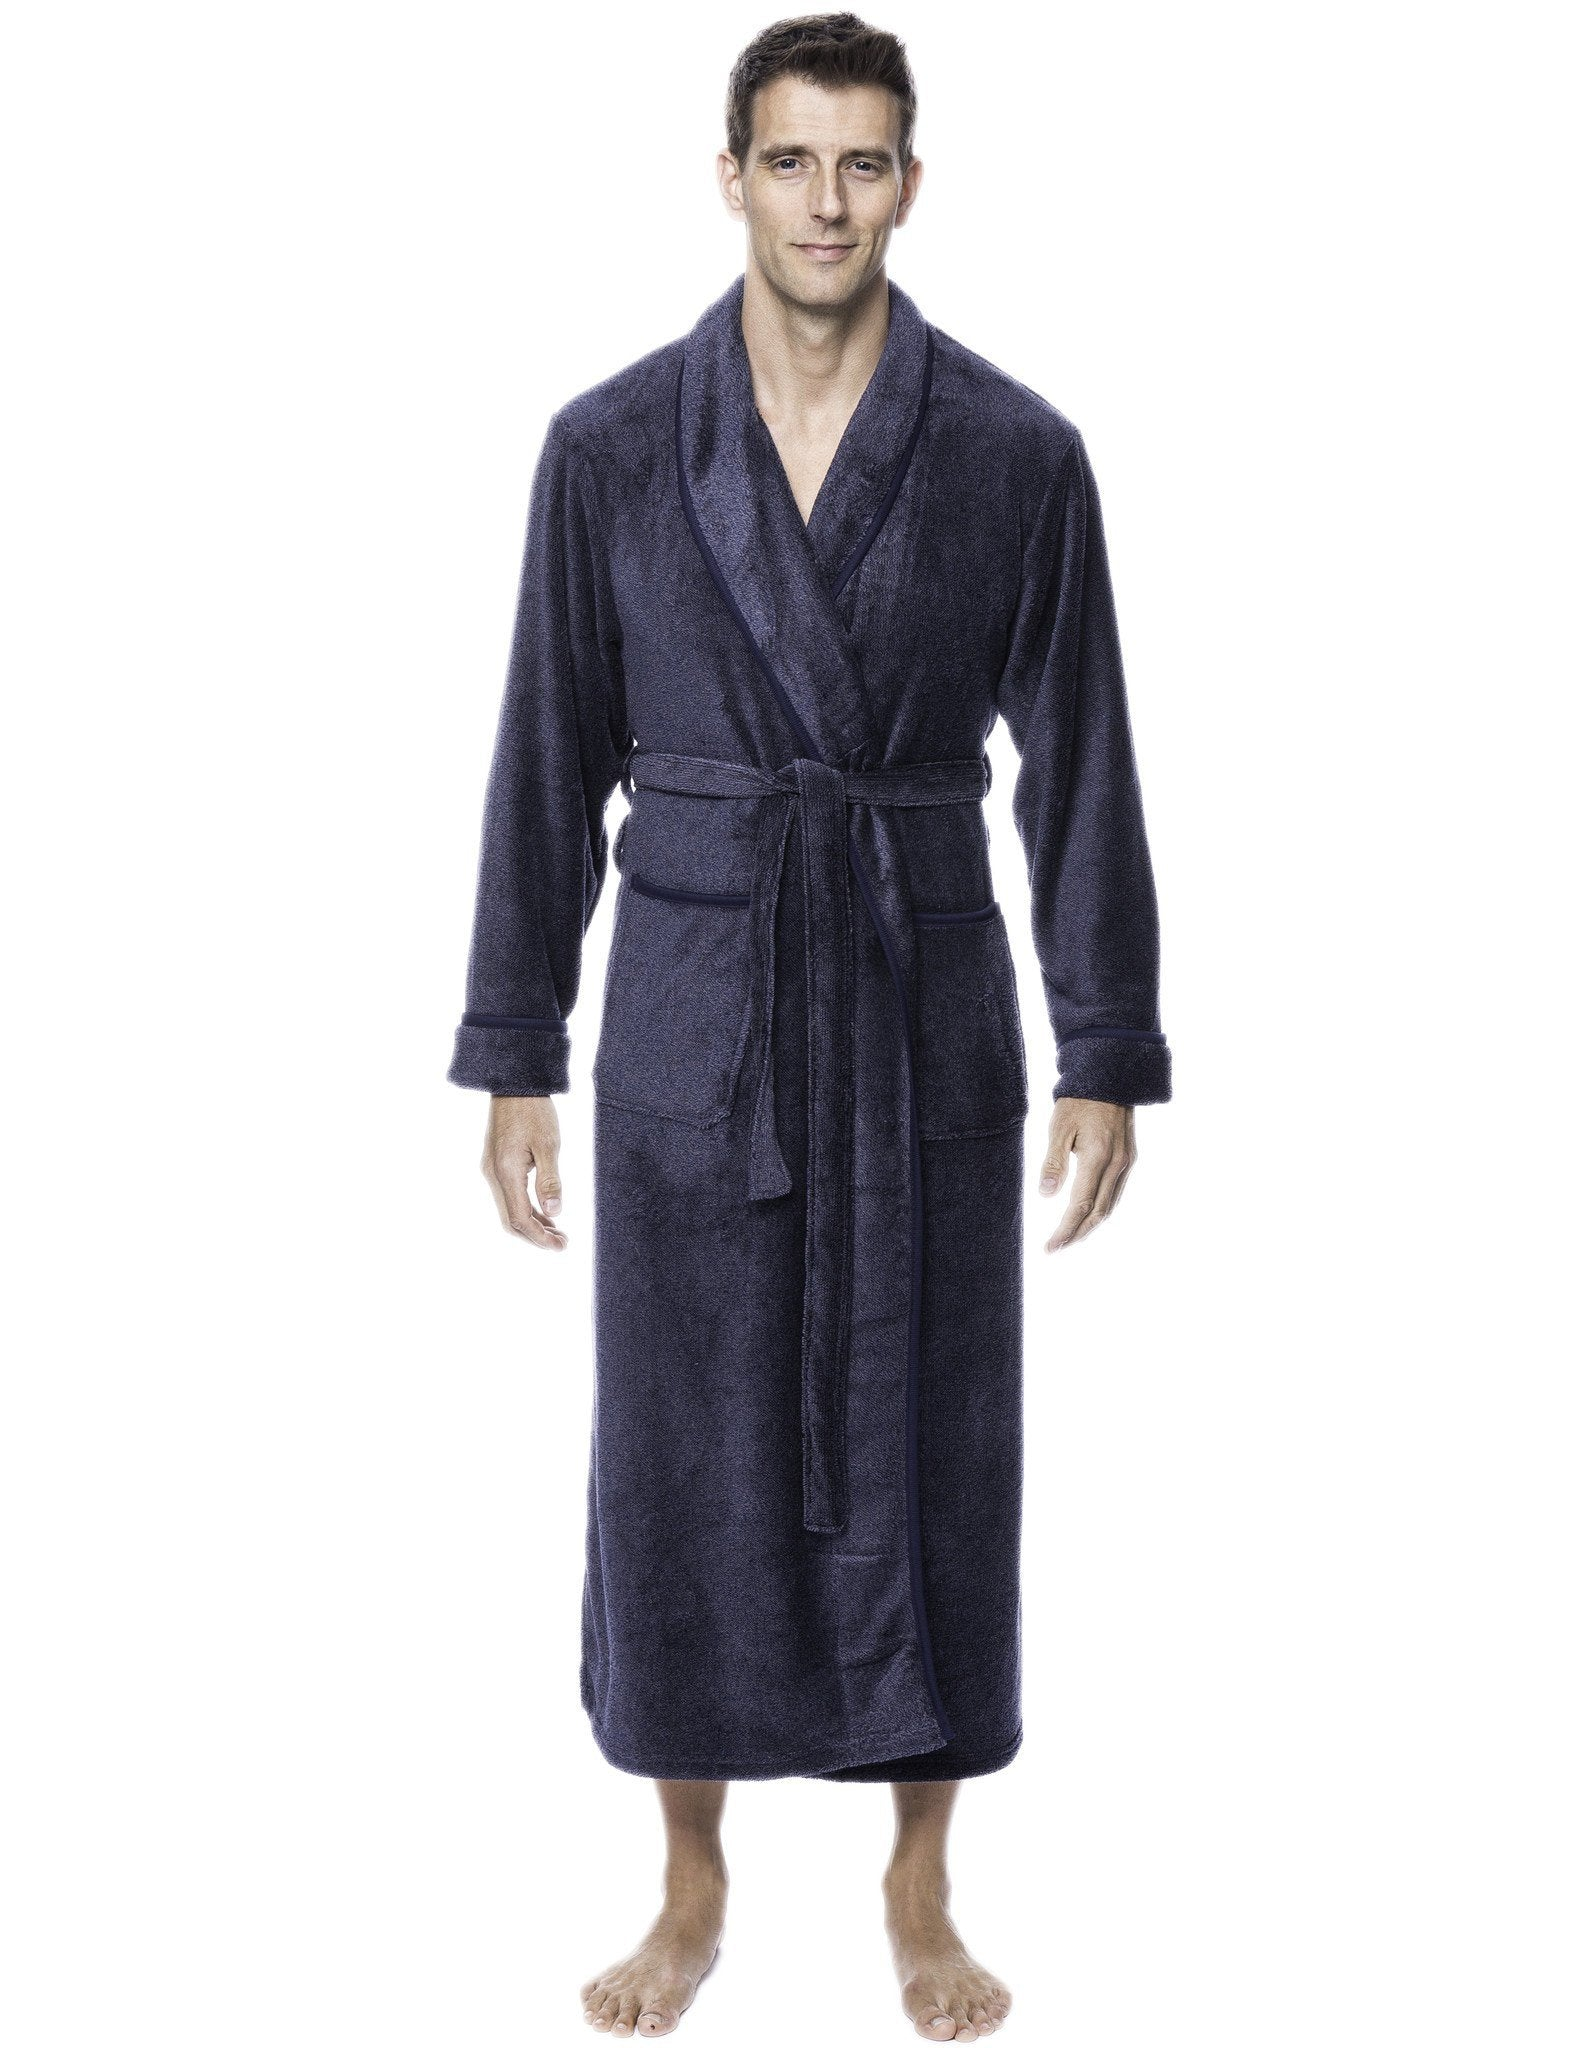 Men's Premium Coral Fleece Full Length Plush Spa/Bath Robe - Marl Navy/Grey